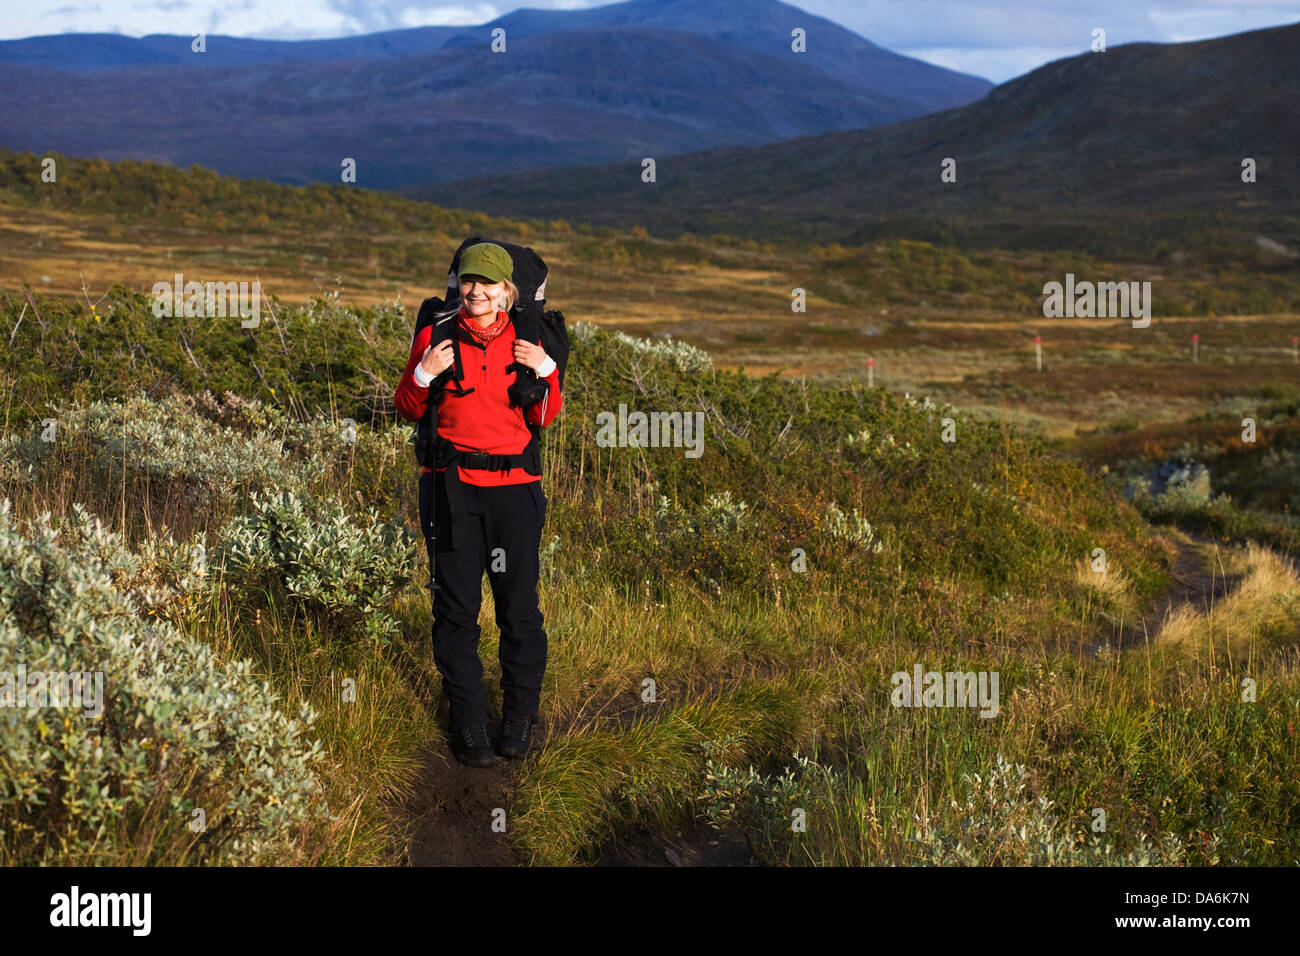 Woman hiking among hills - Stock Image